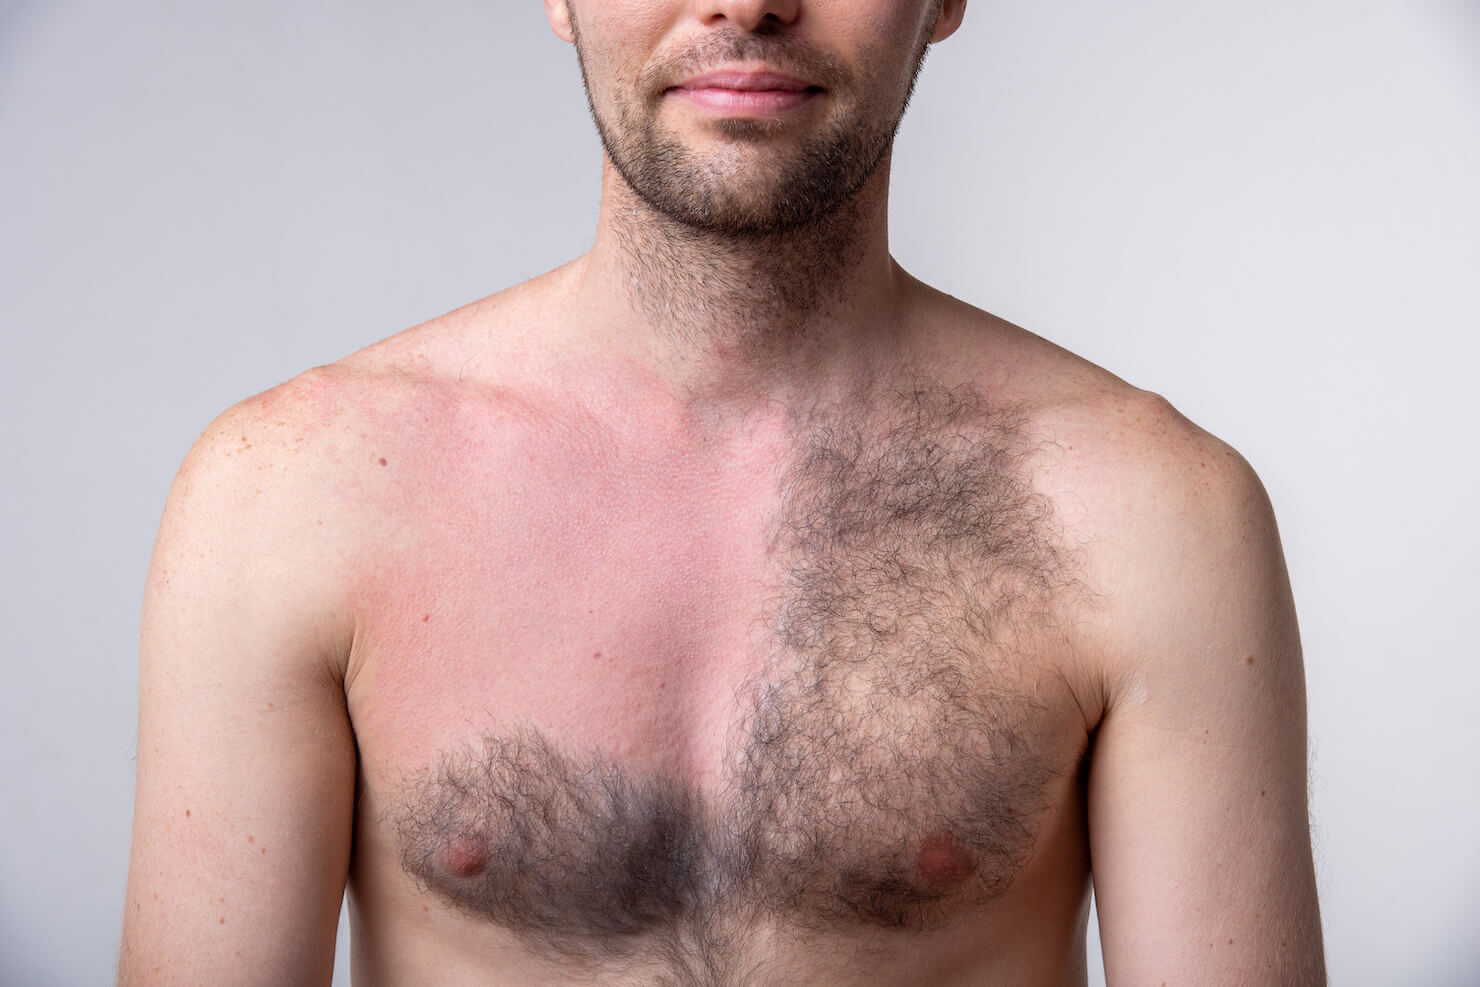 Common Laser Hair Removal Side Effects And How To Fix Or Prevent Them